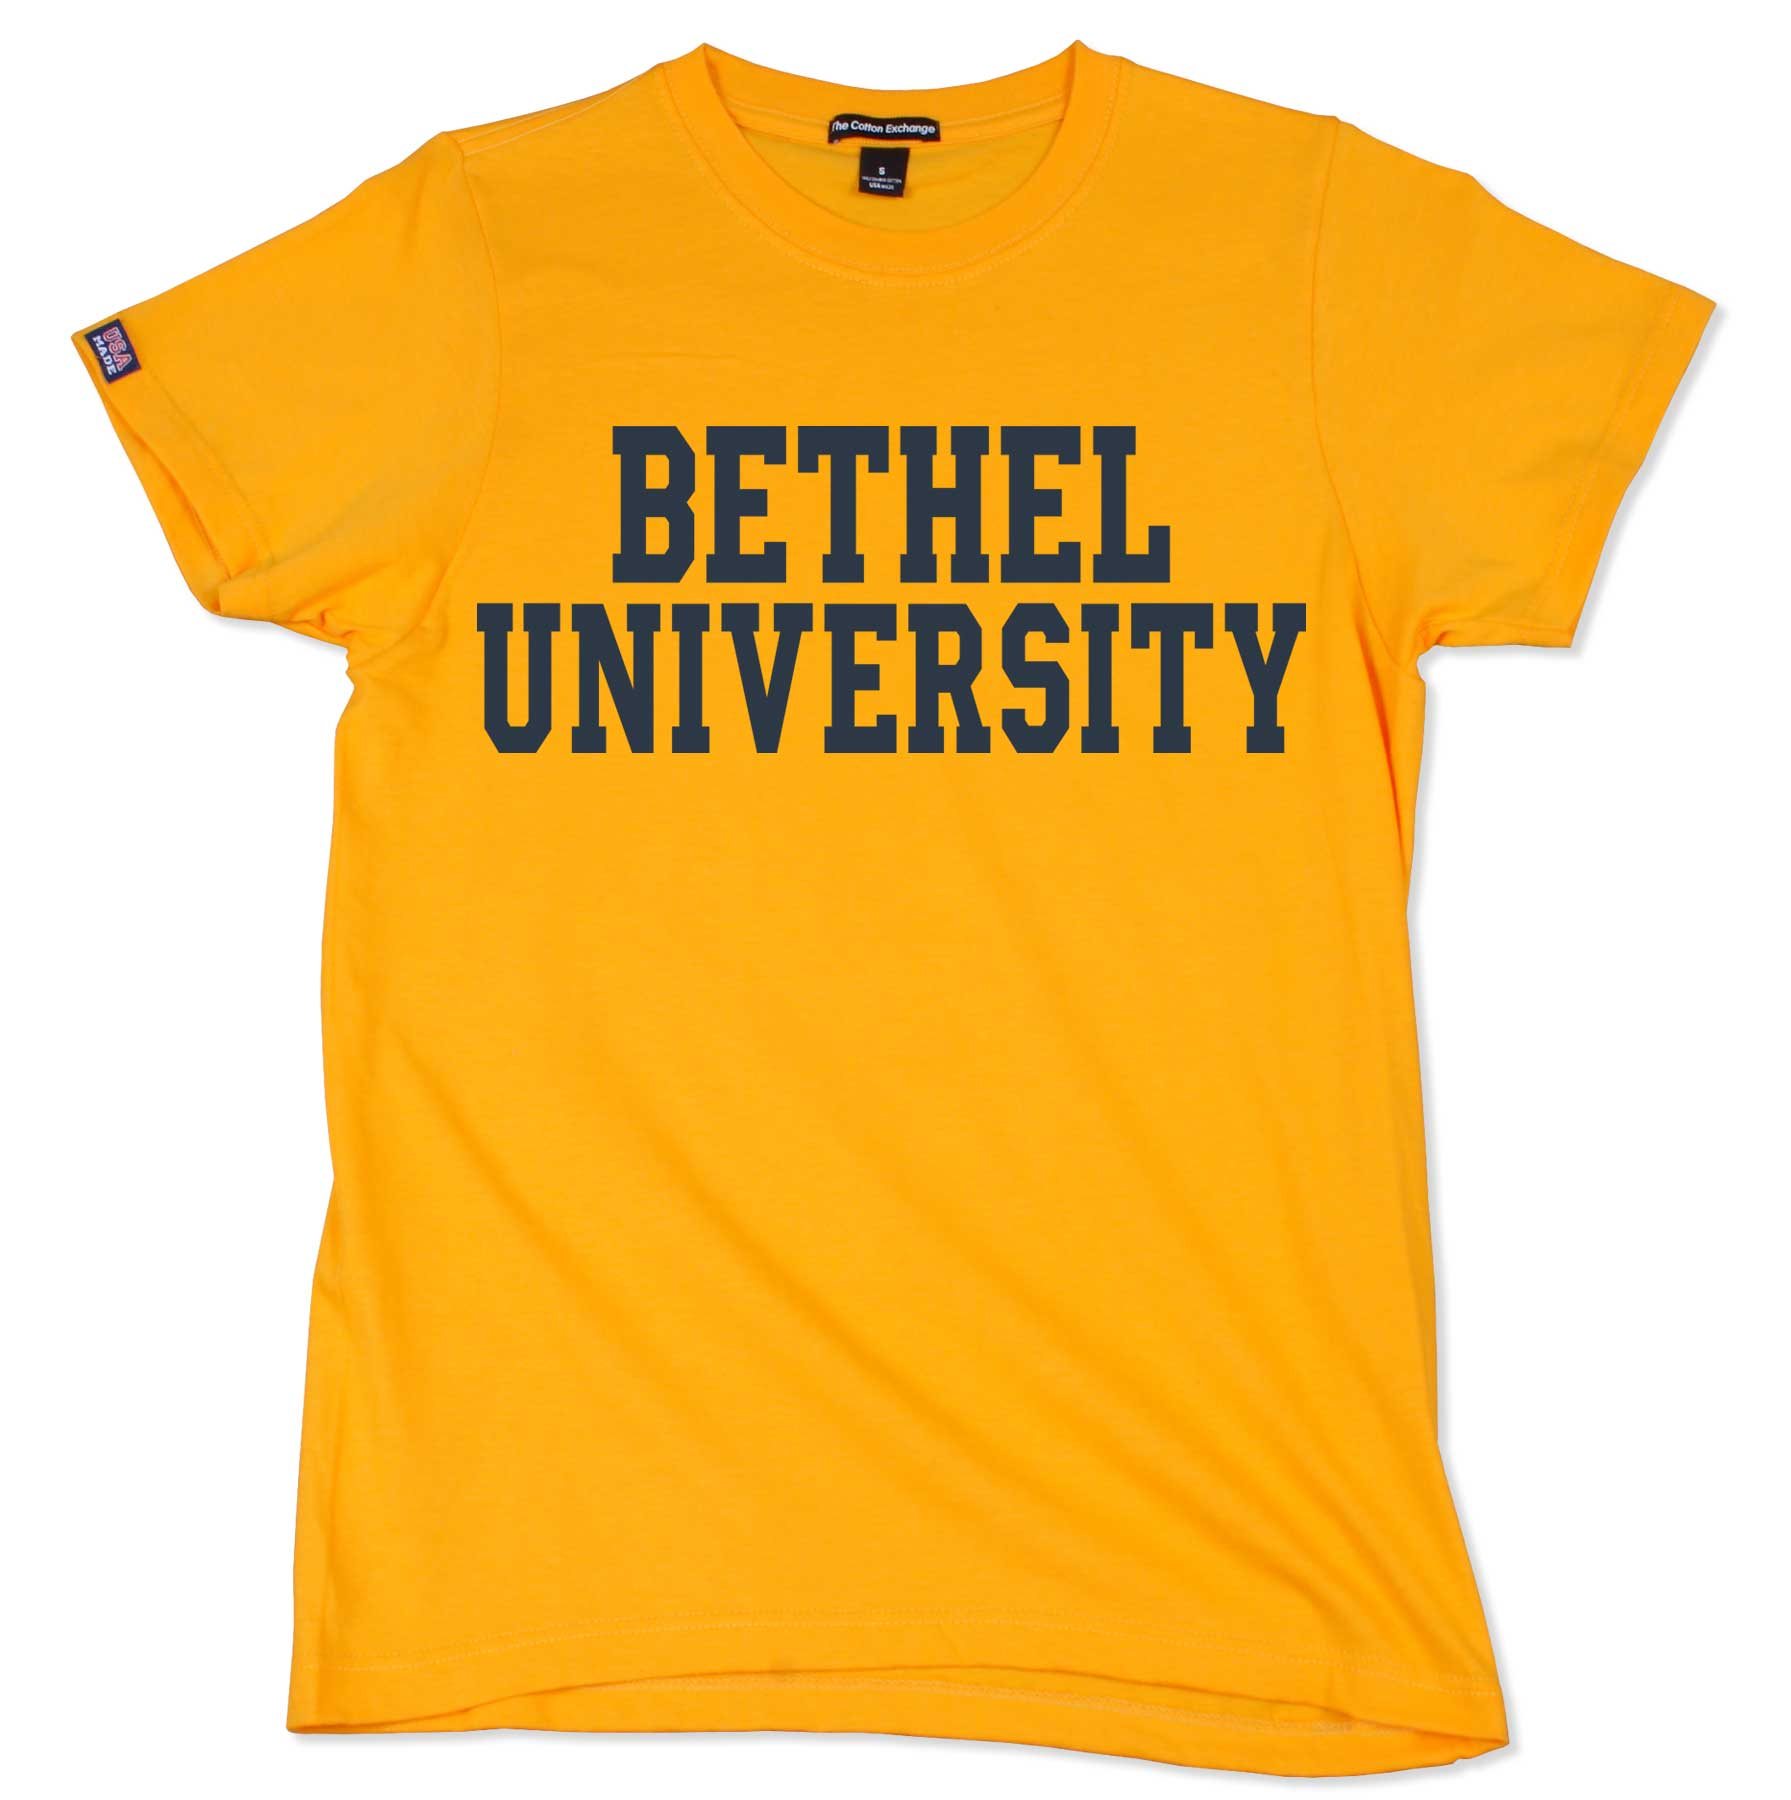 Bethel university t shirt by the cotton exchange bethel for University t shirts with your name